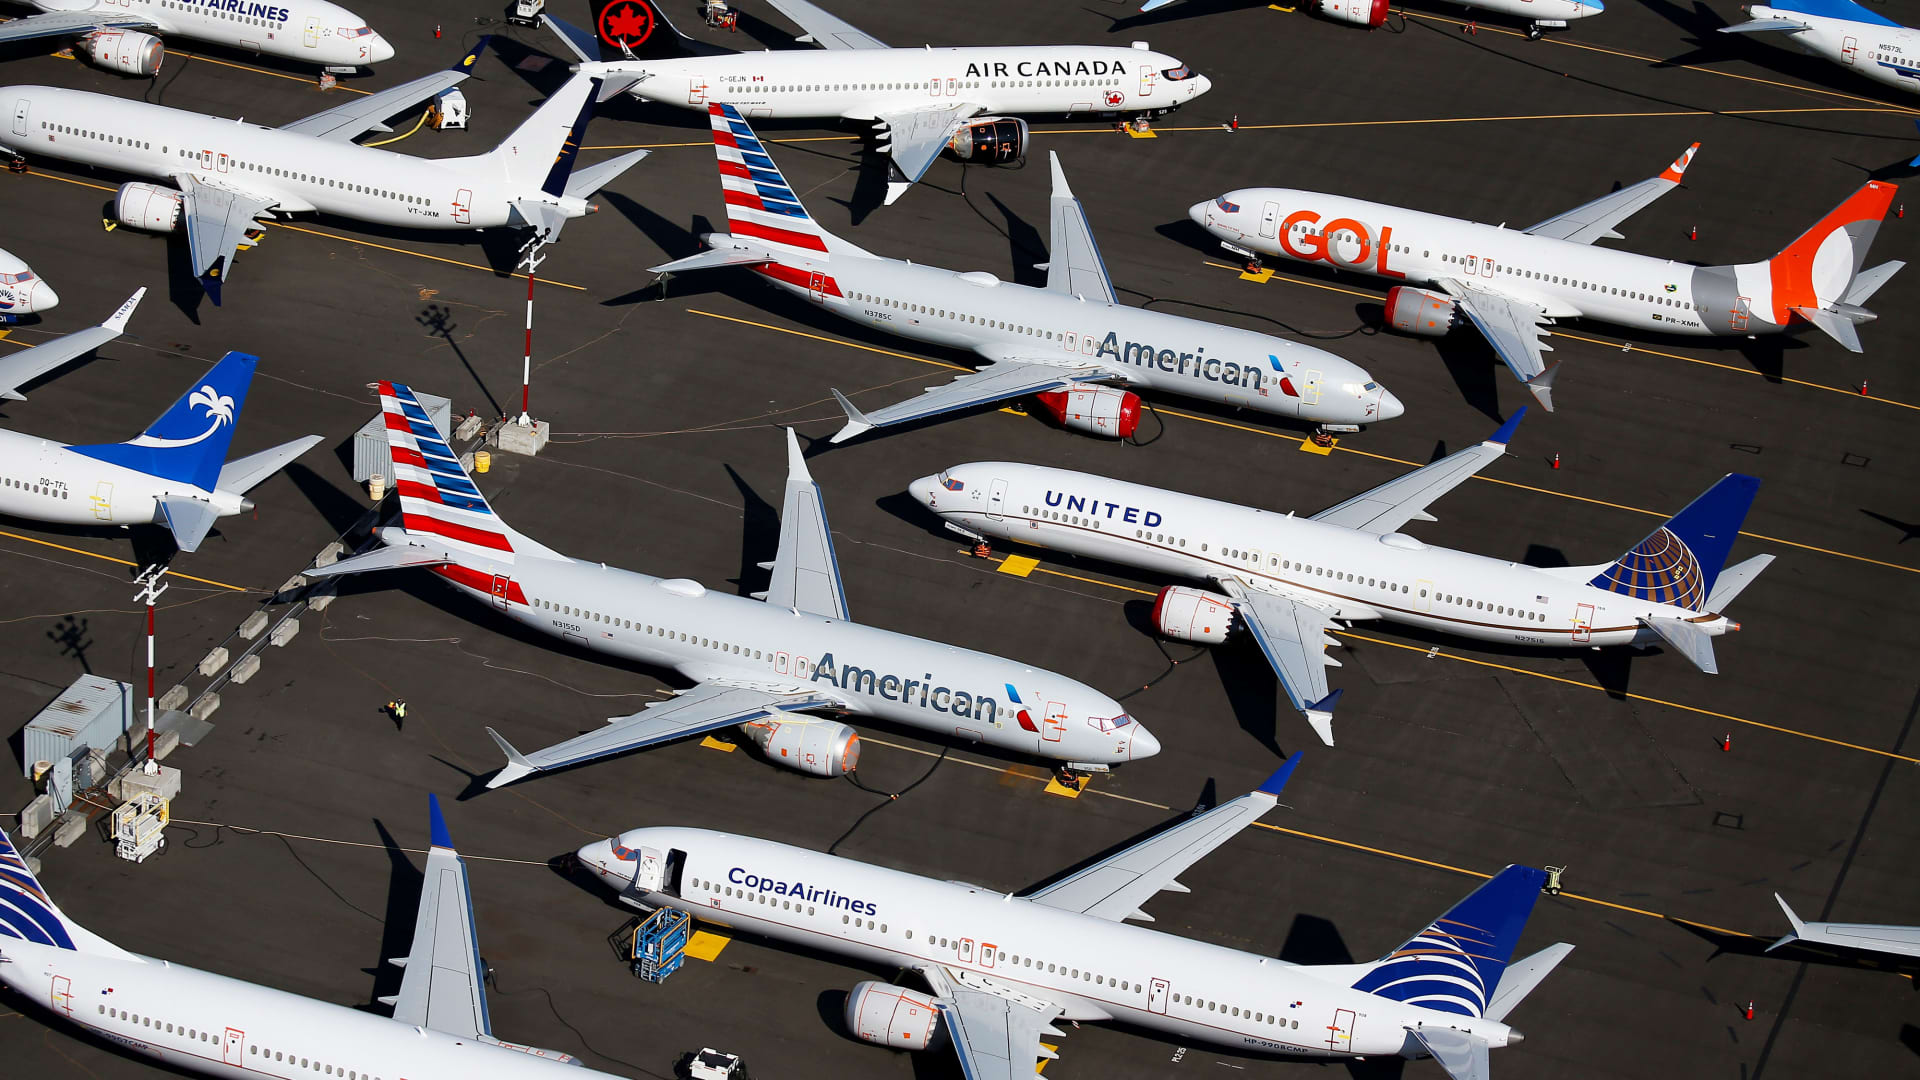 Grounded Boeing 737 MAX aircraft are seen parked in an aerial photo at Boeing Field in Seattle, Washington, July 1, 2019.